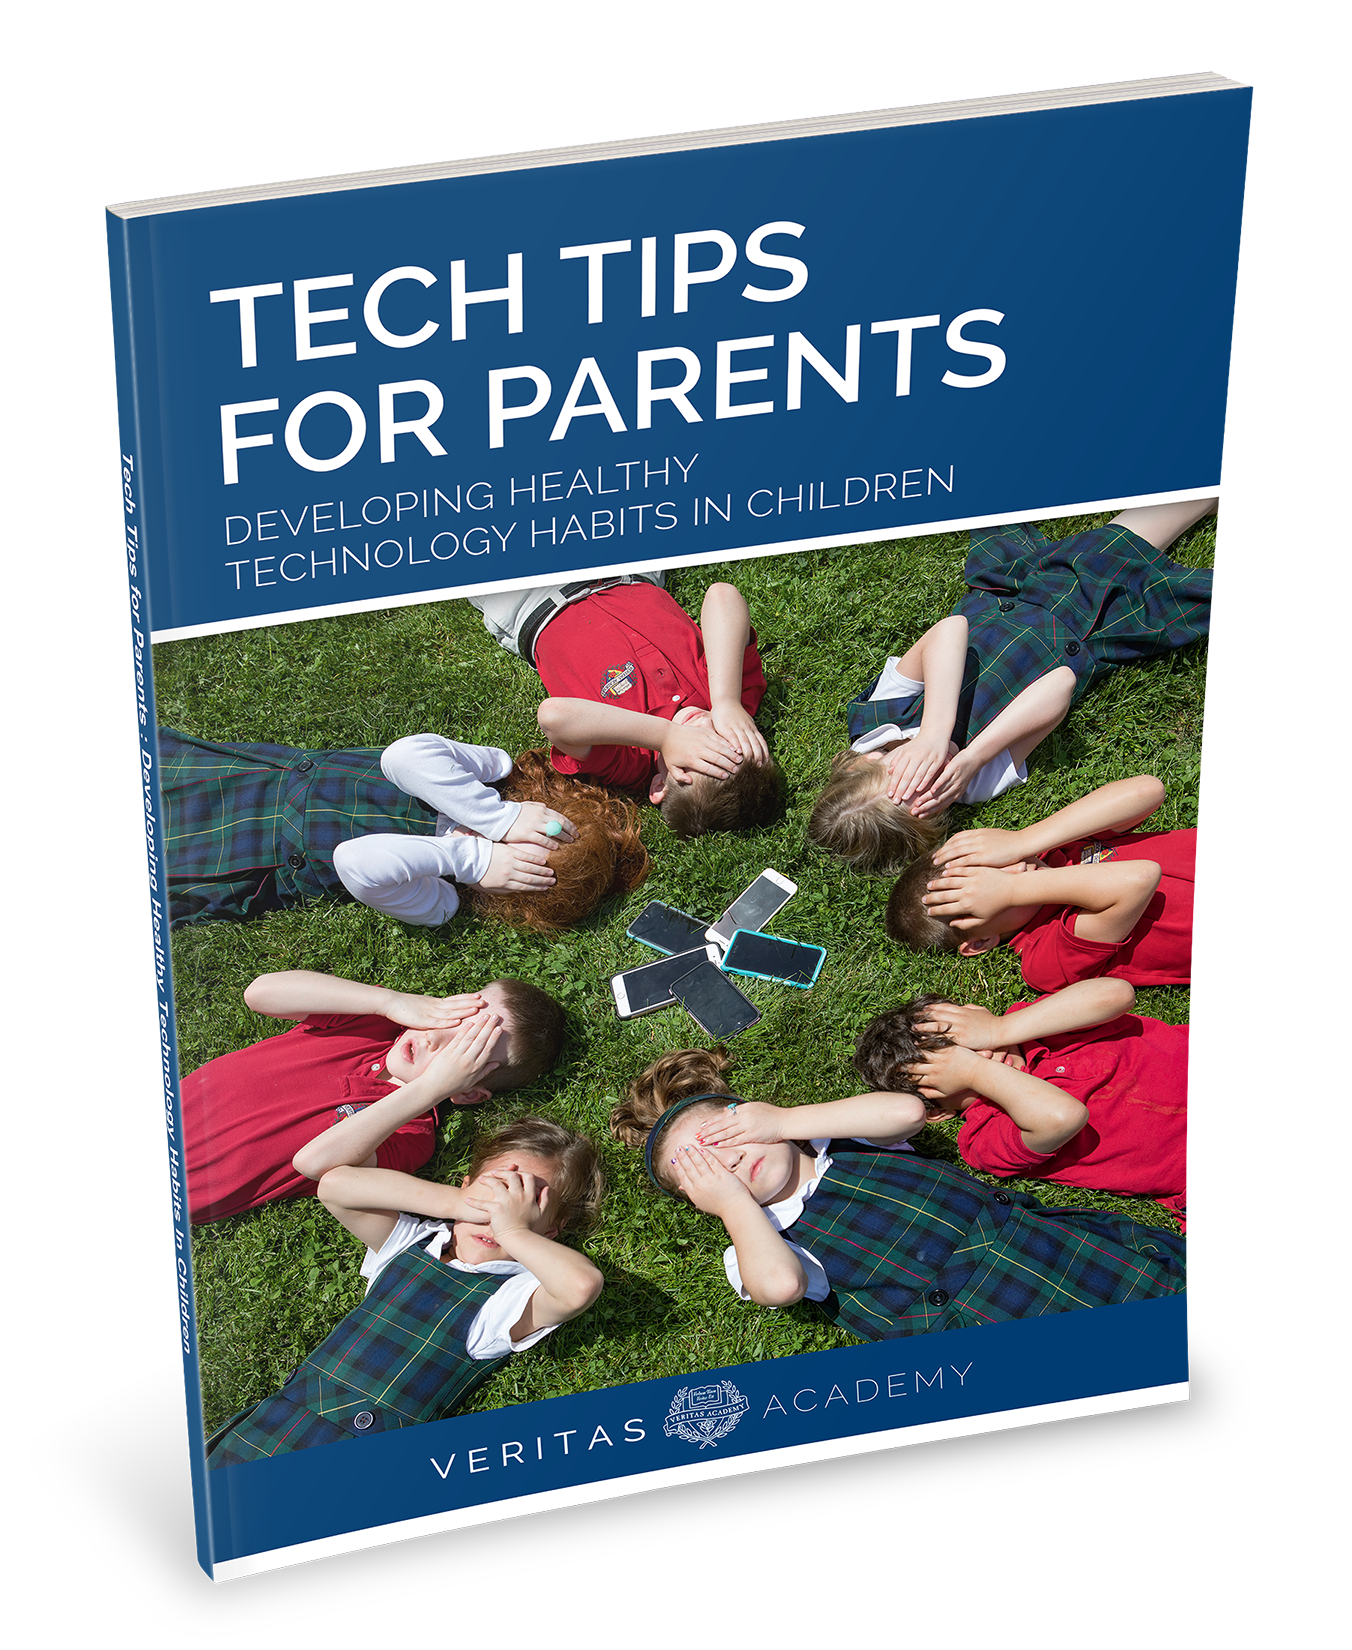 Tech Tips for Parents: Developing Healthy Technology Habits in Children   Veritas Academy